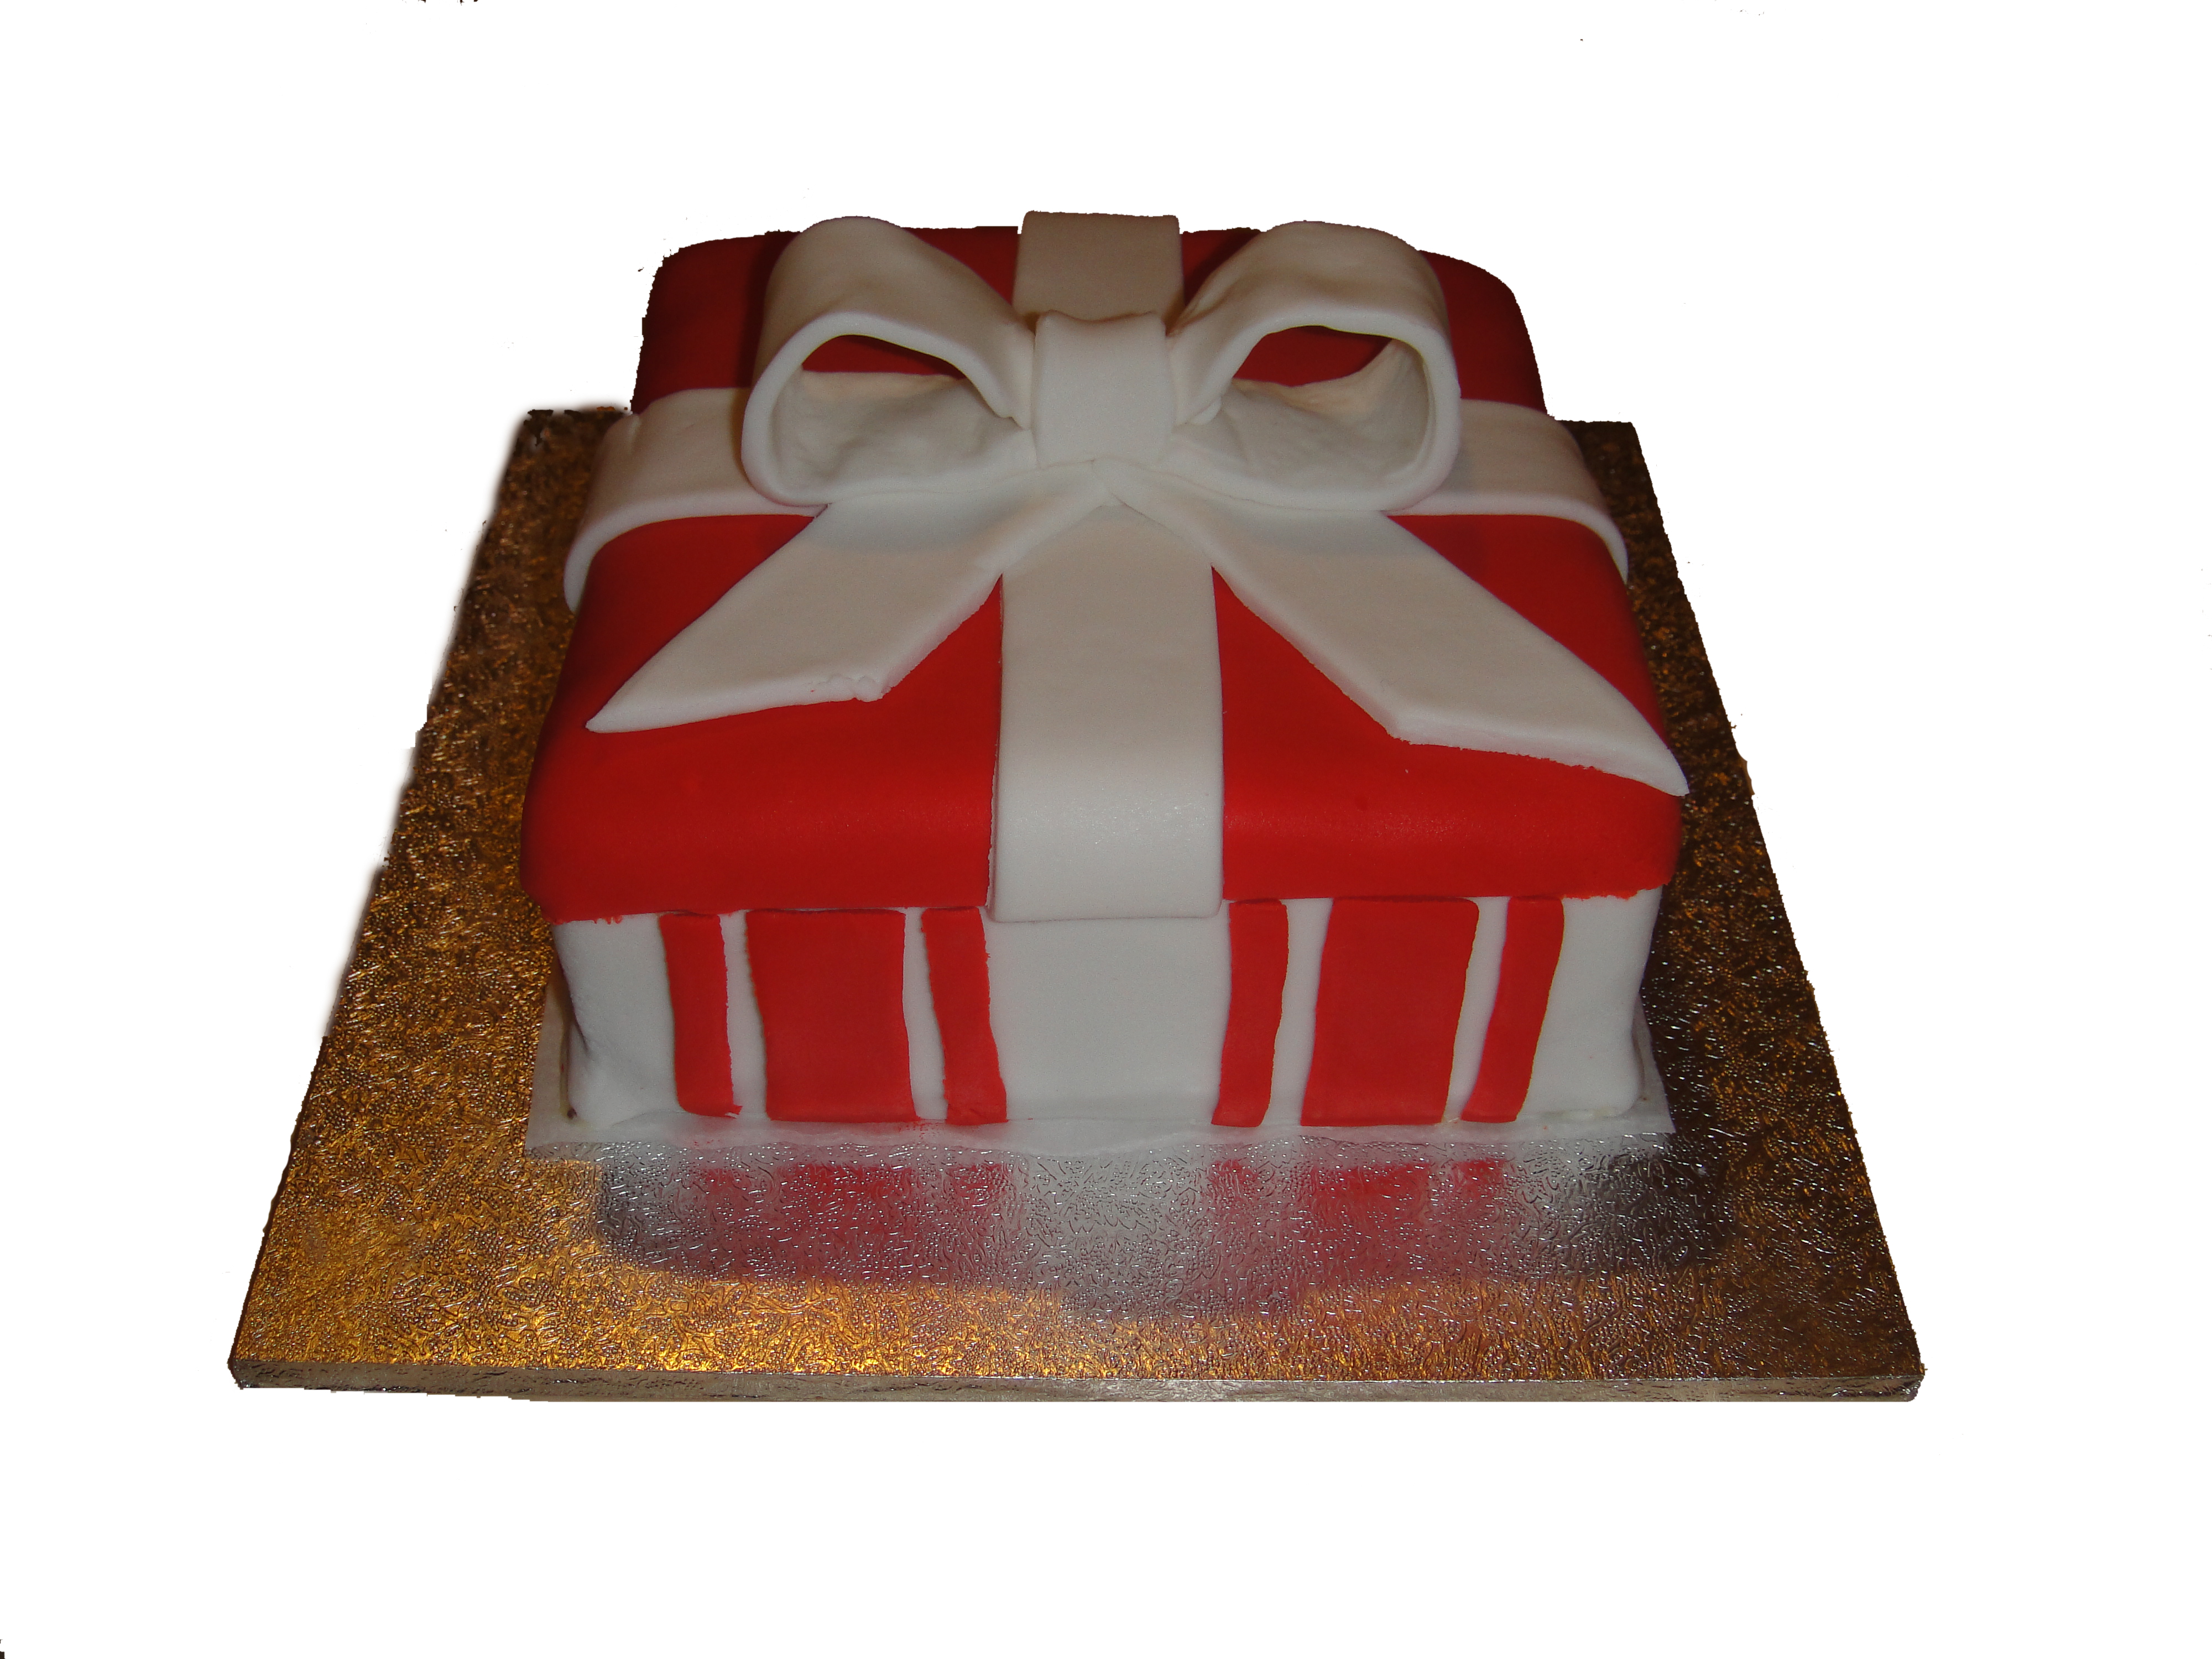 Fondant Cake Design For Husband : Confessions of a Cake Addict from a girl who always has ...